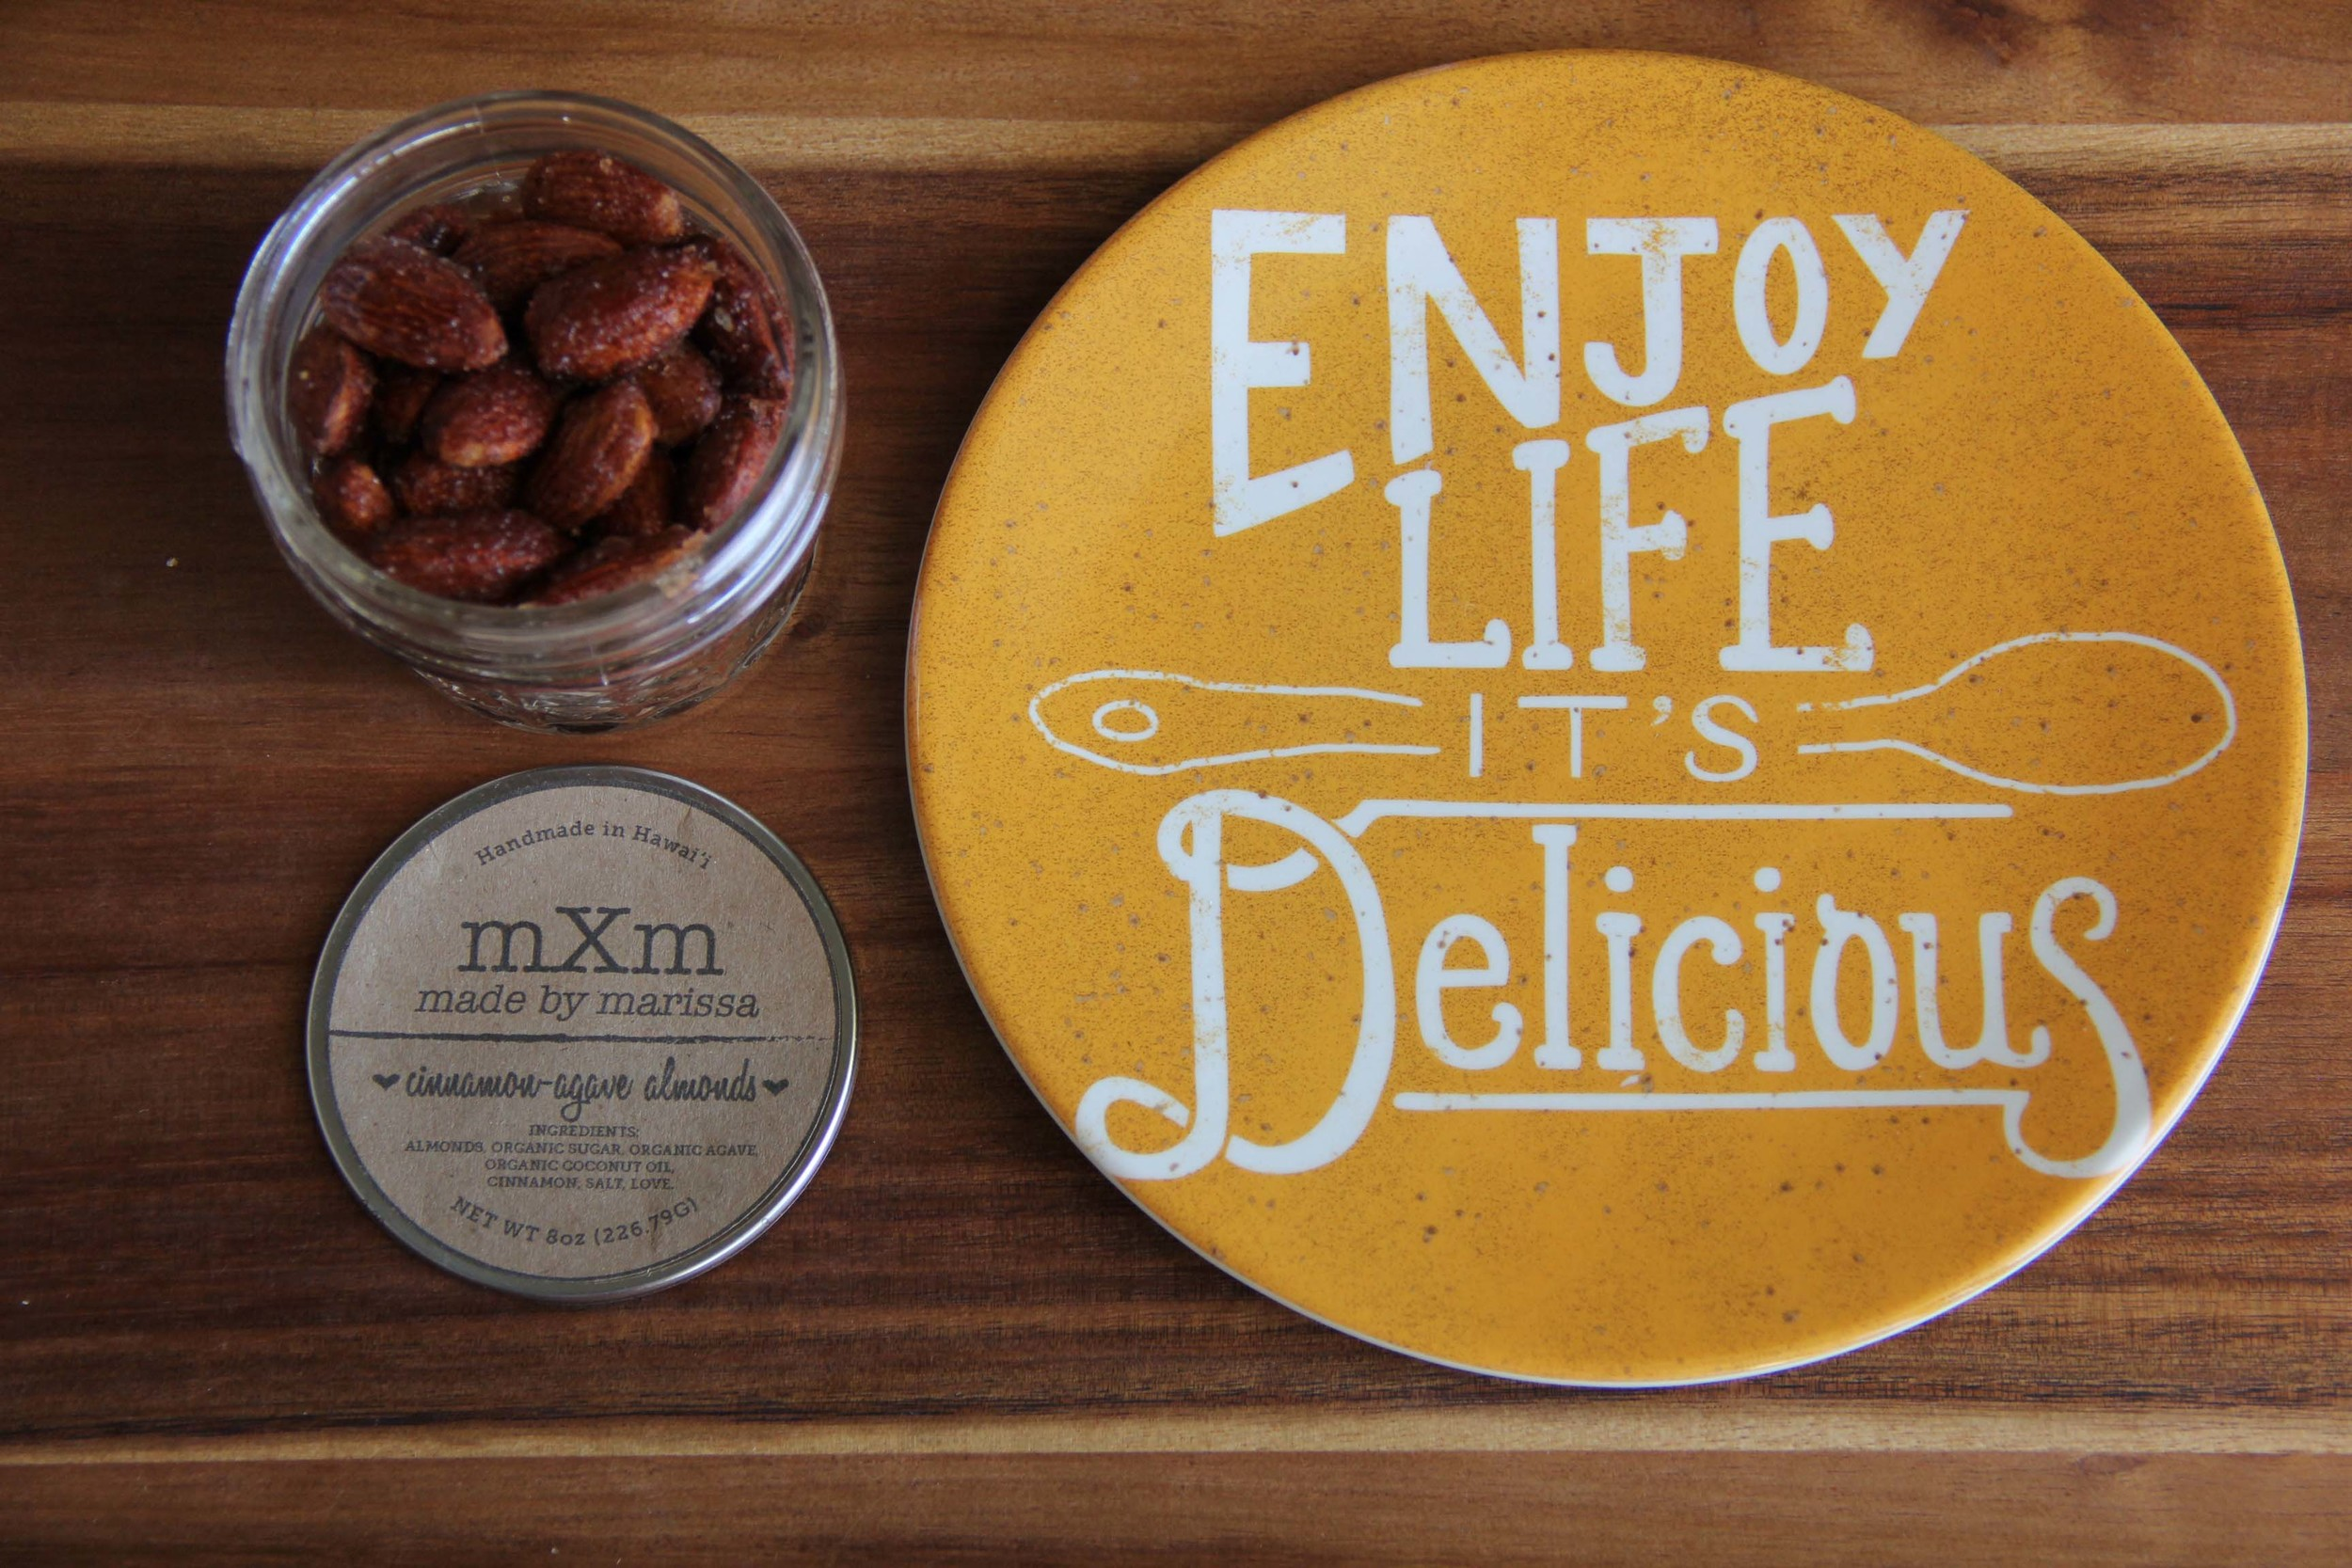 Made By Marissa > Handmade in Hawaii > Product > Cinnamon Agave Almonds > Product 1.jpg